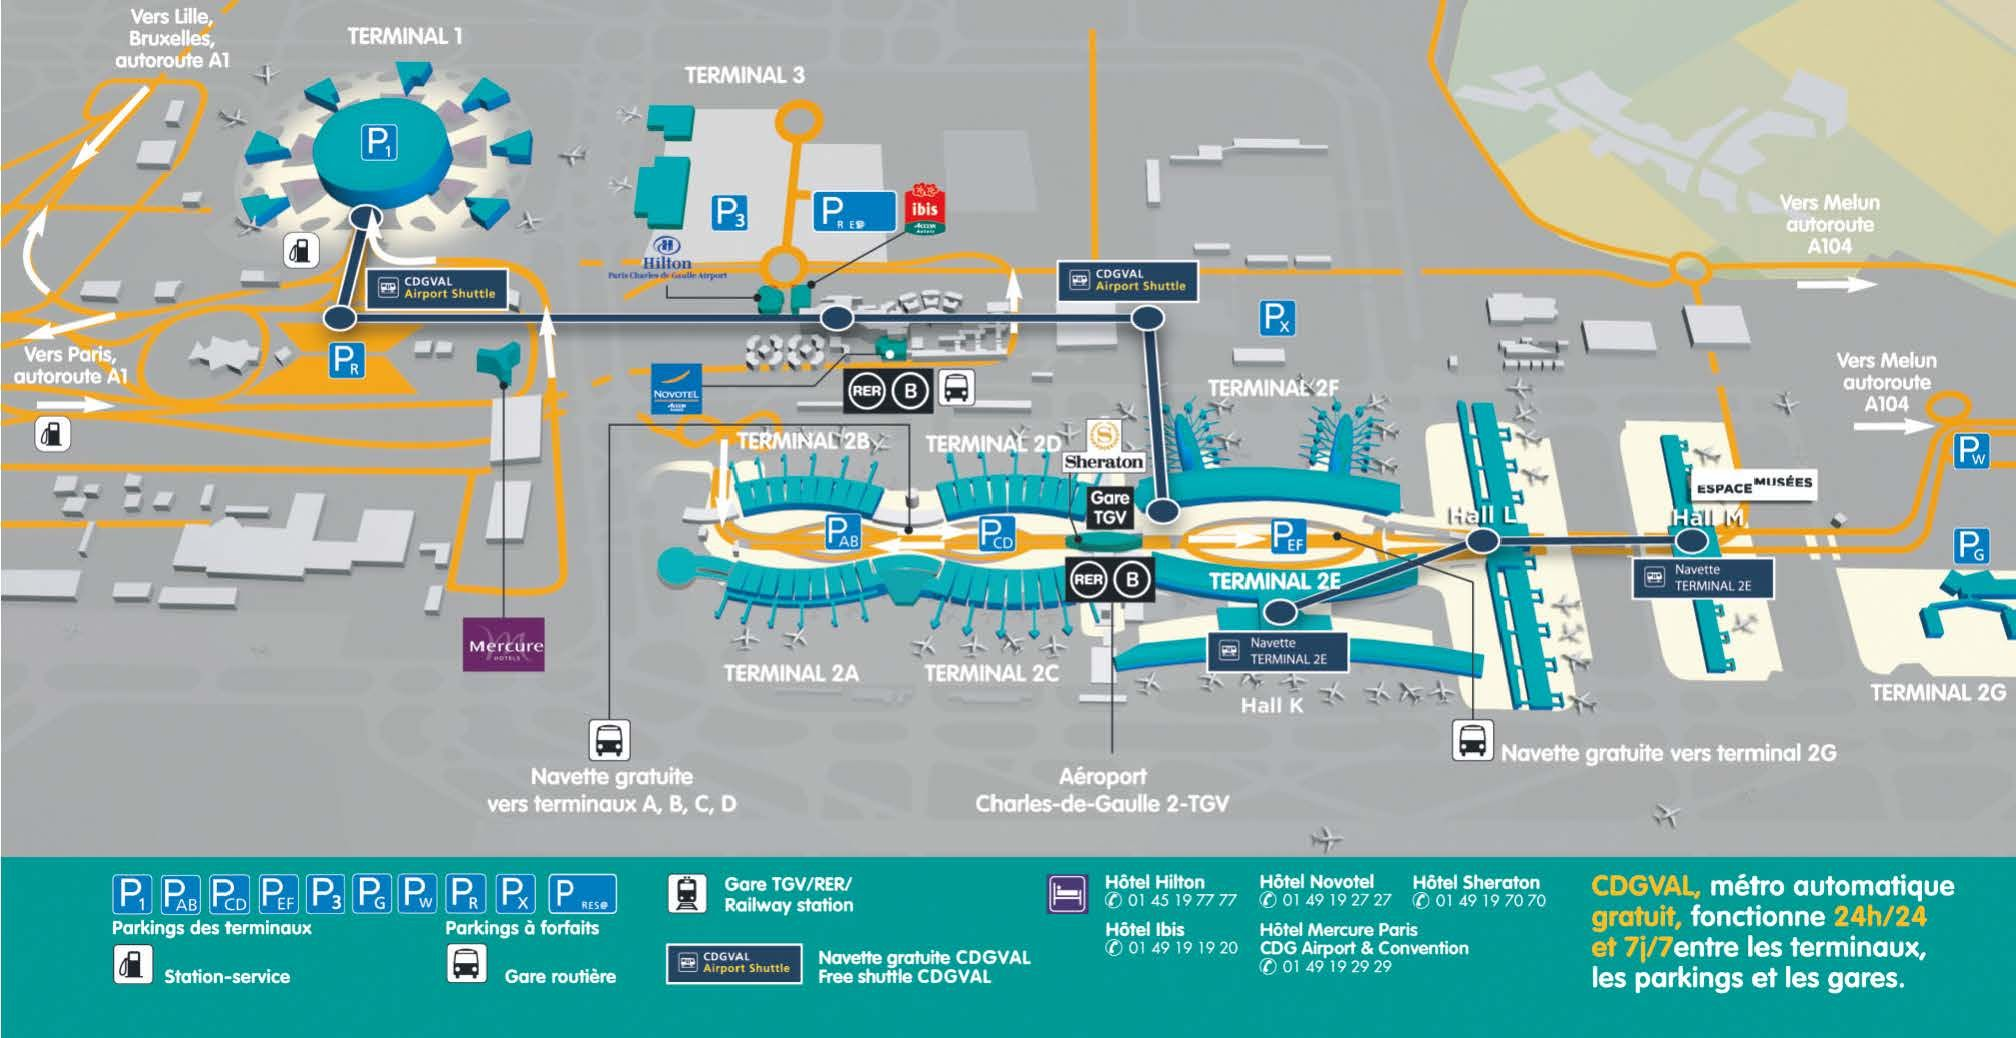 CDG Map (Roissy-Charles de Gaulle Airport) showing: CDG ...